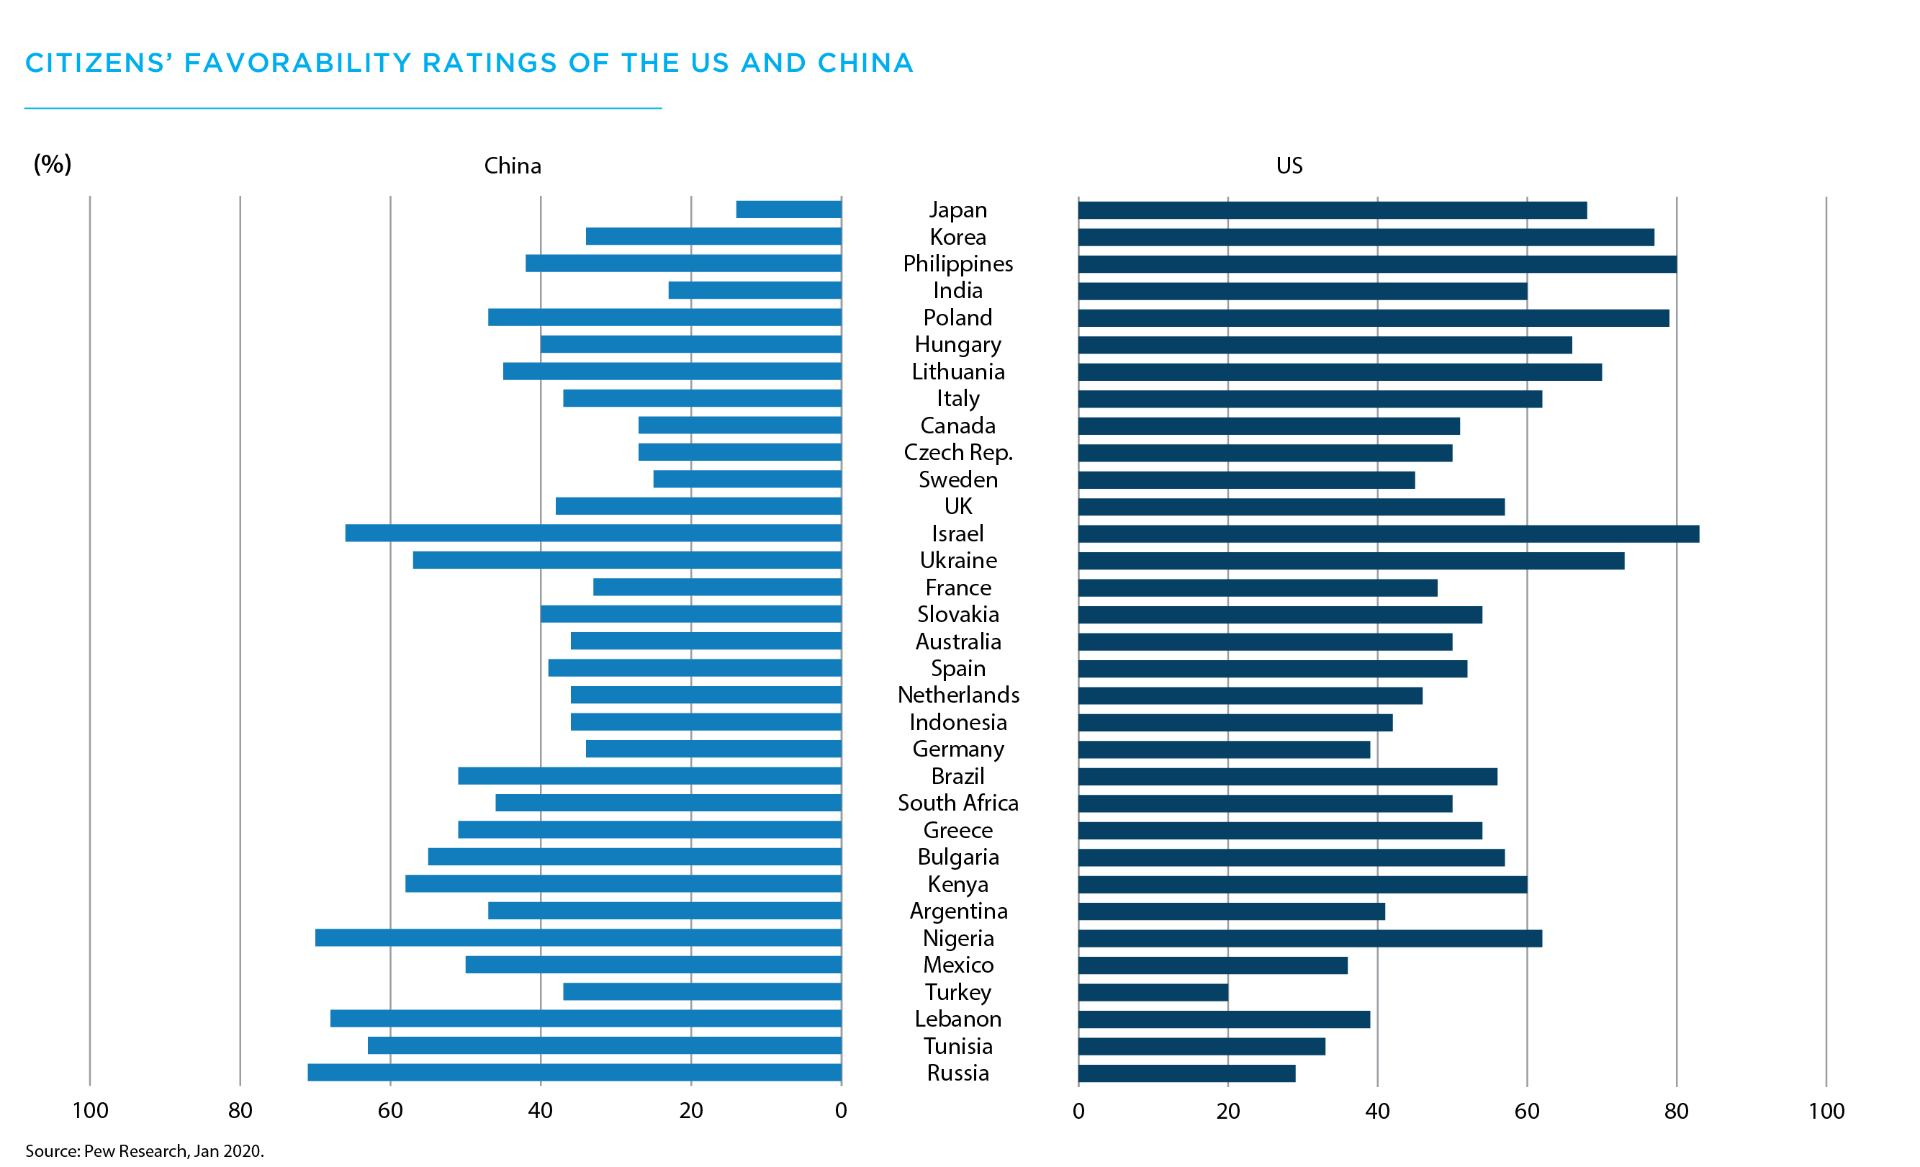 Citizens' favorability ratings of the US and China